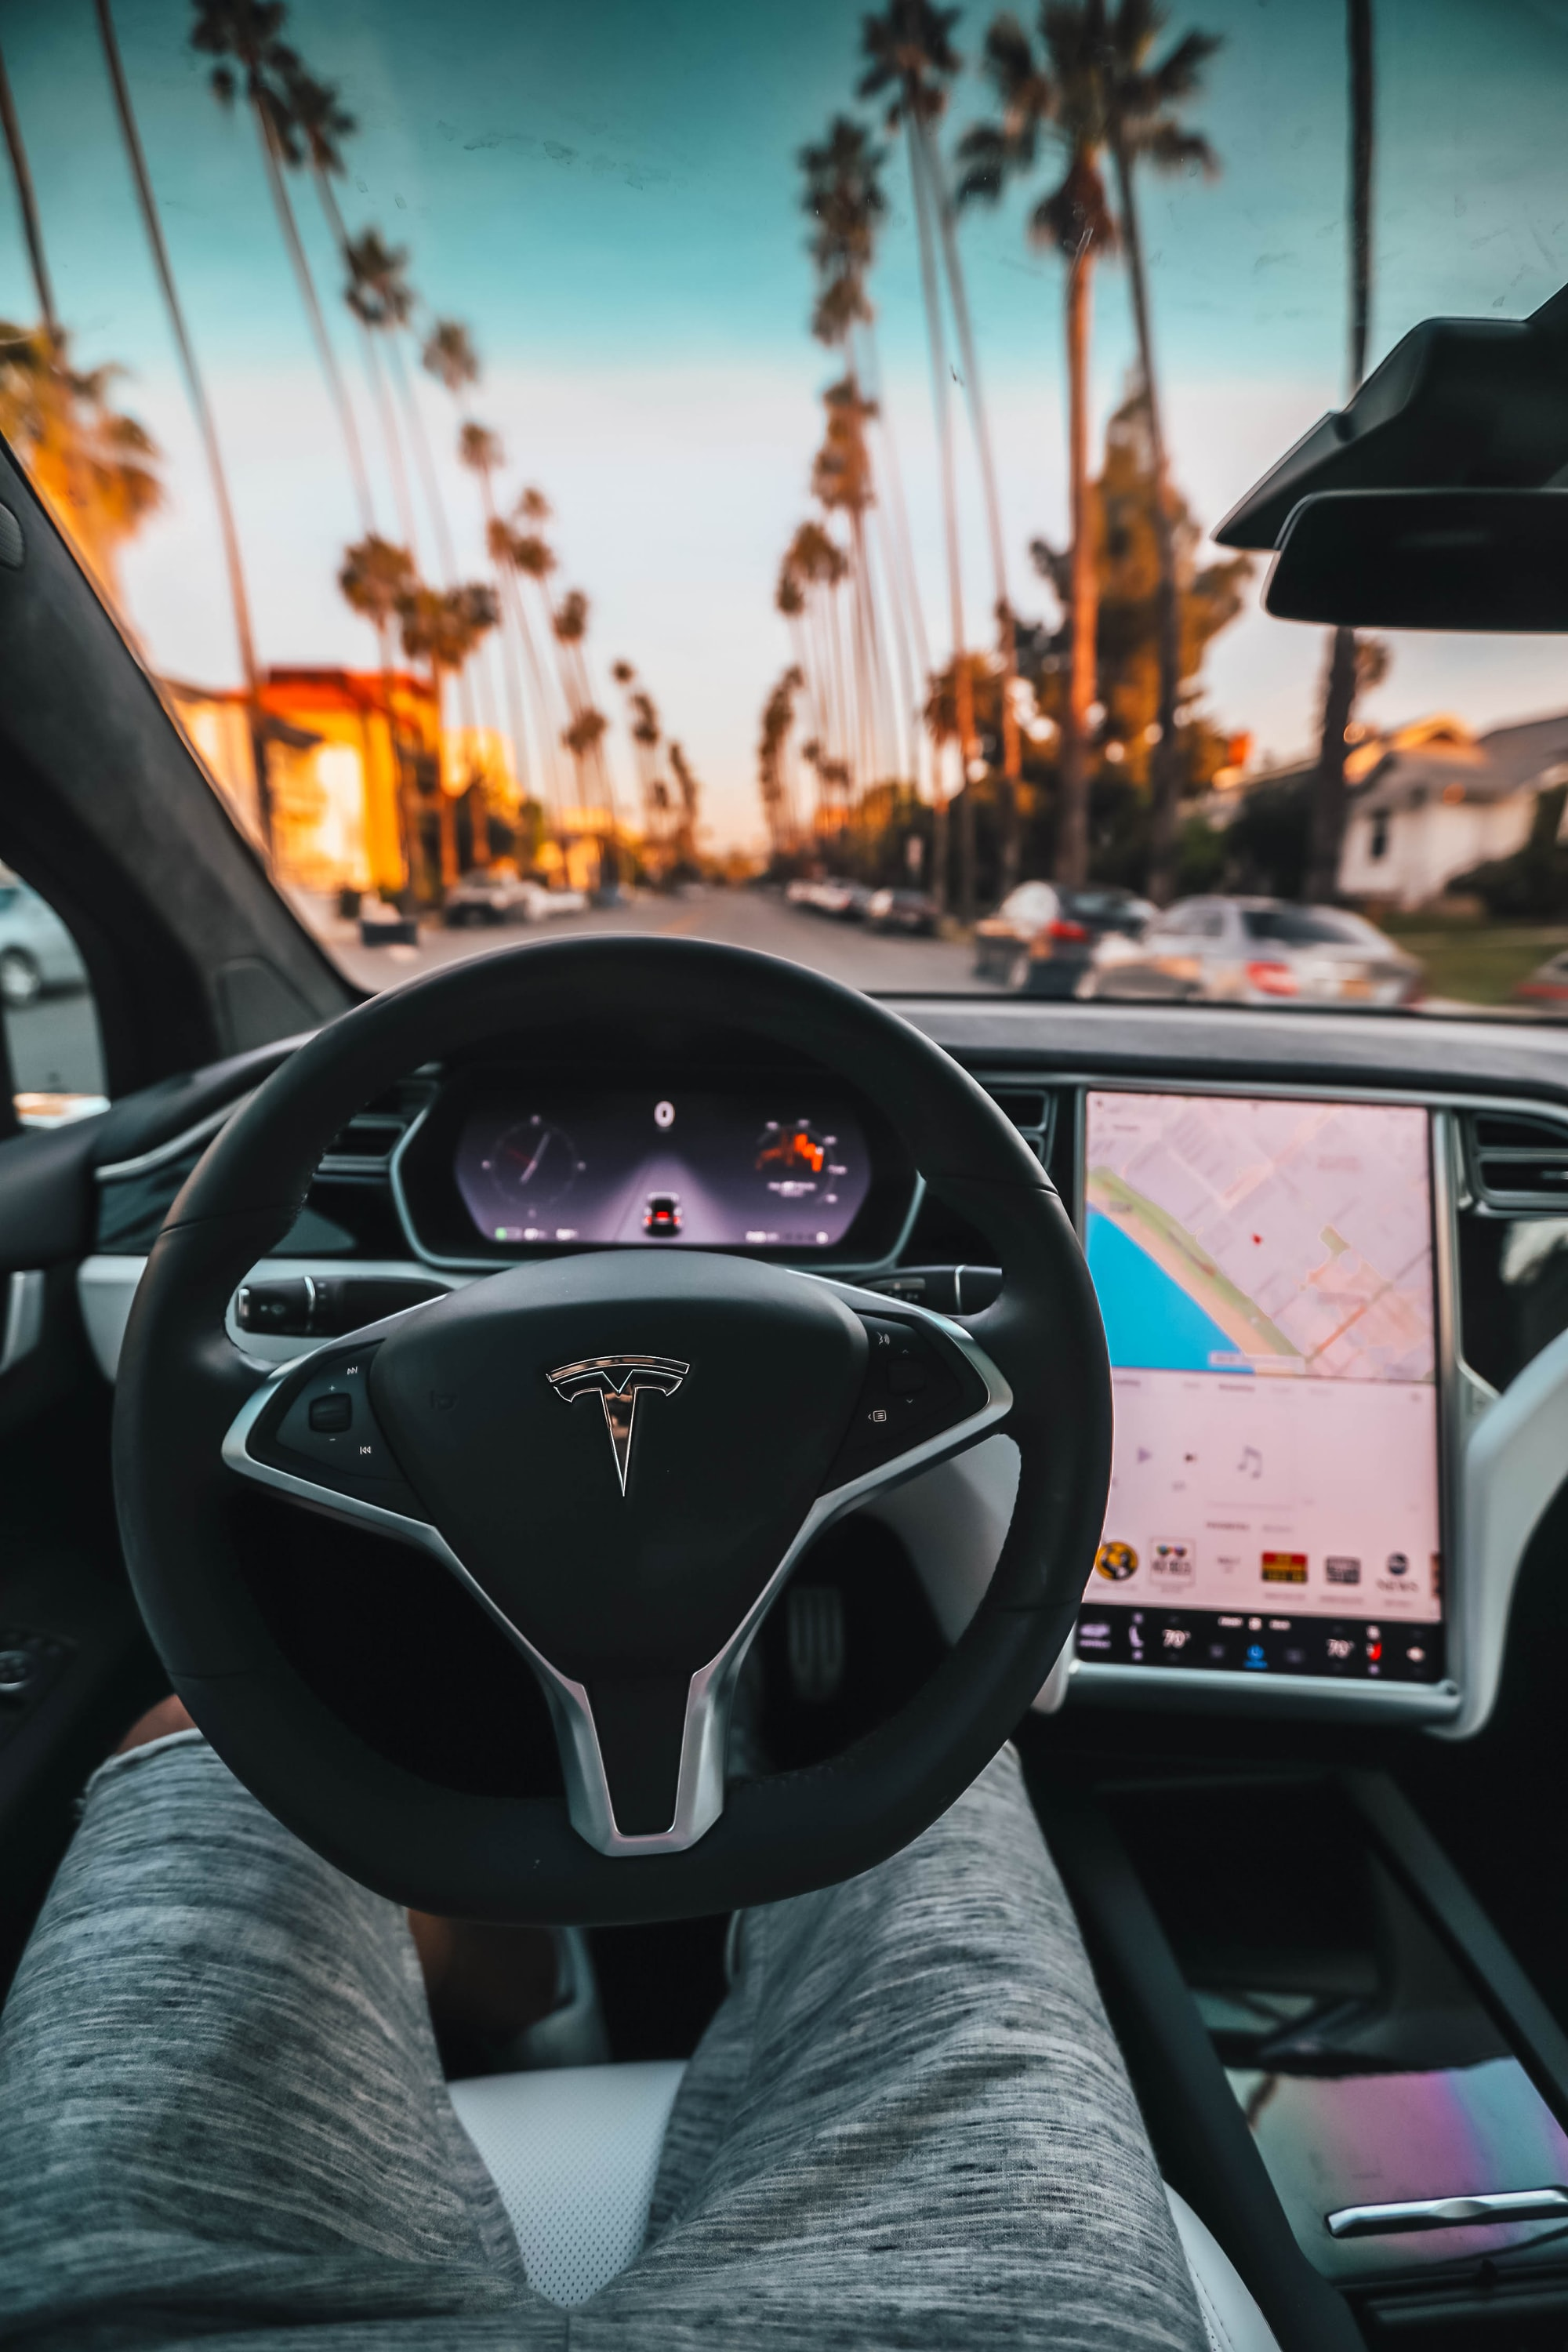 Learn: Connected and Autonomous Vehicles